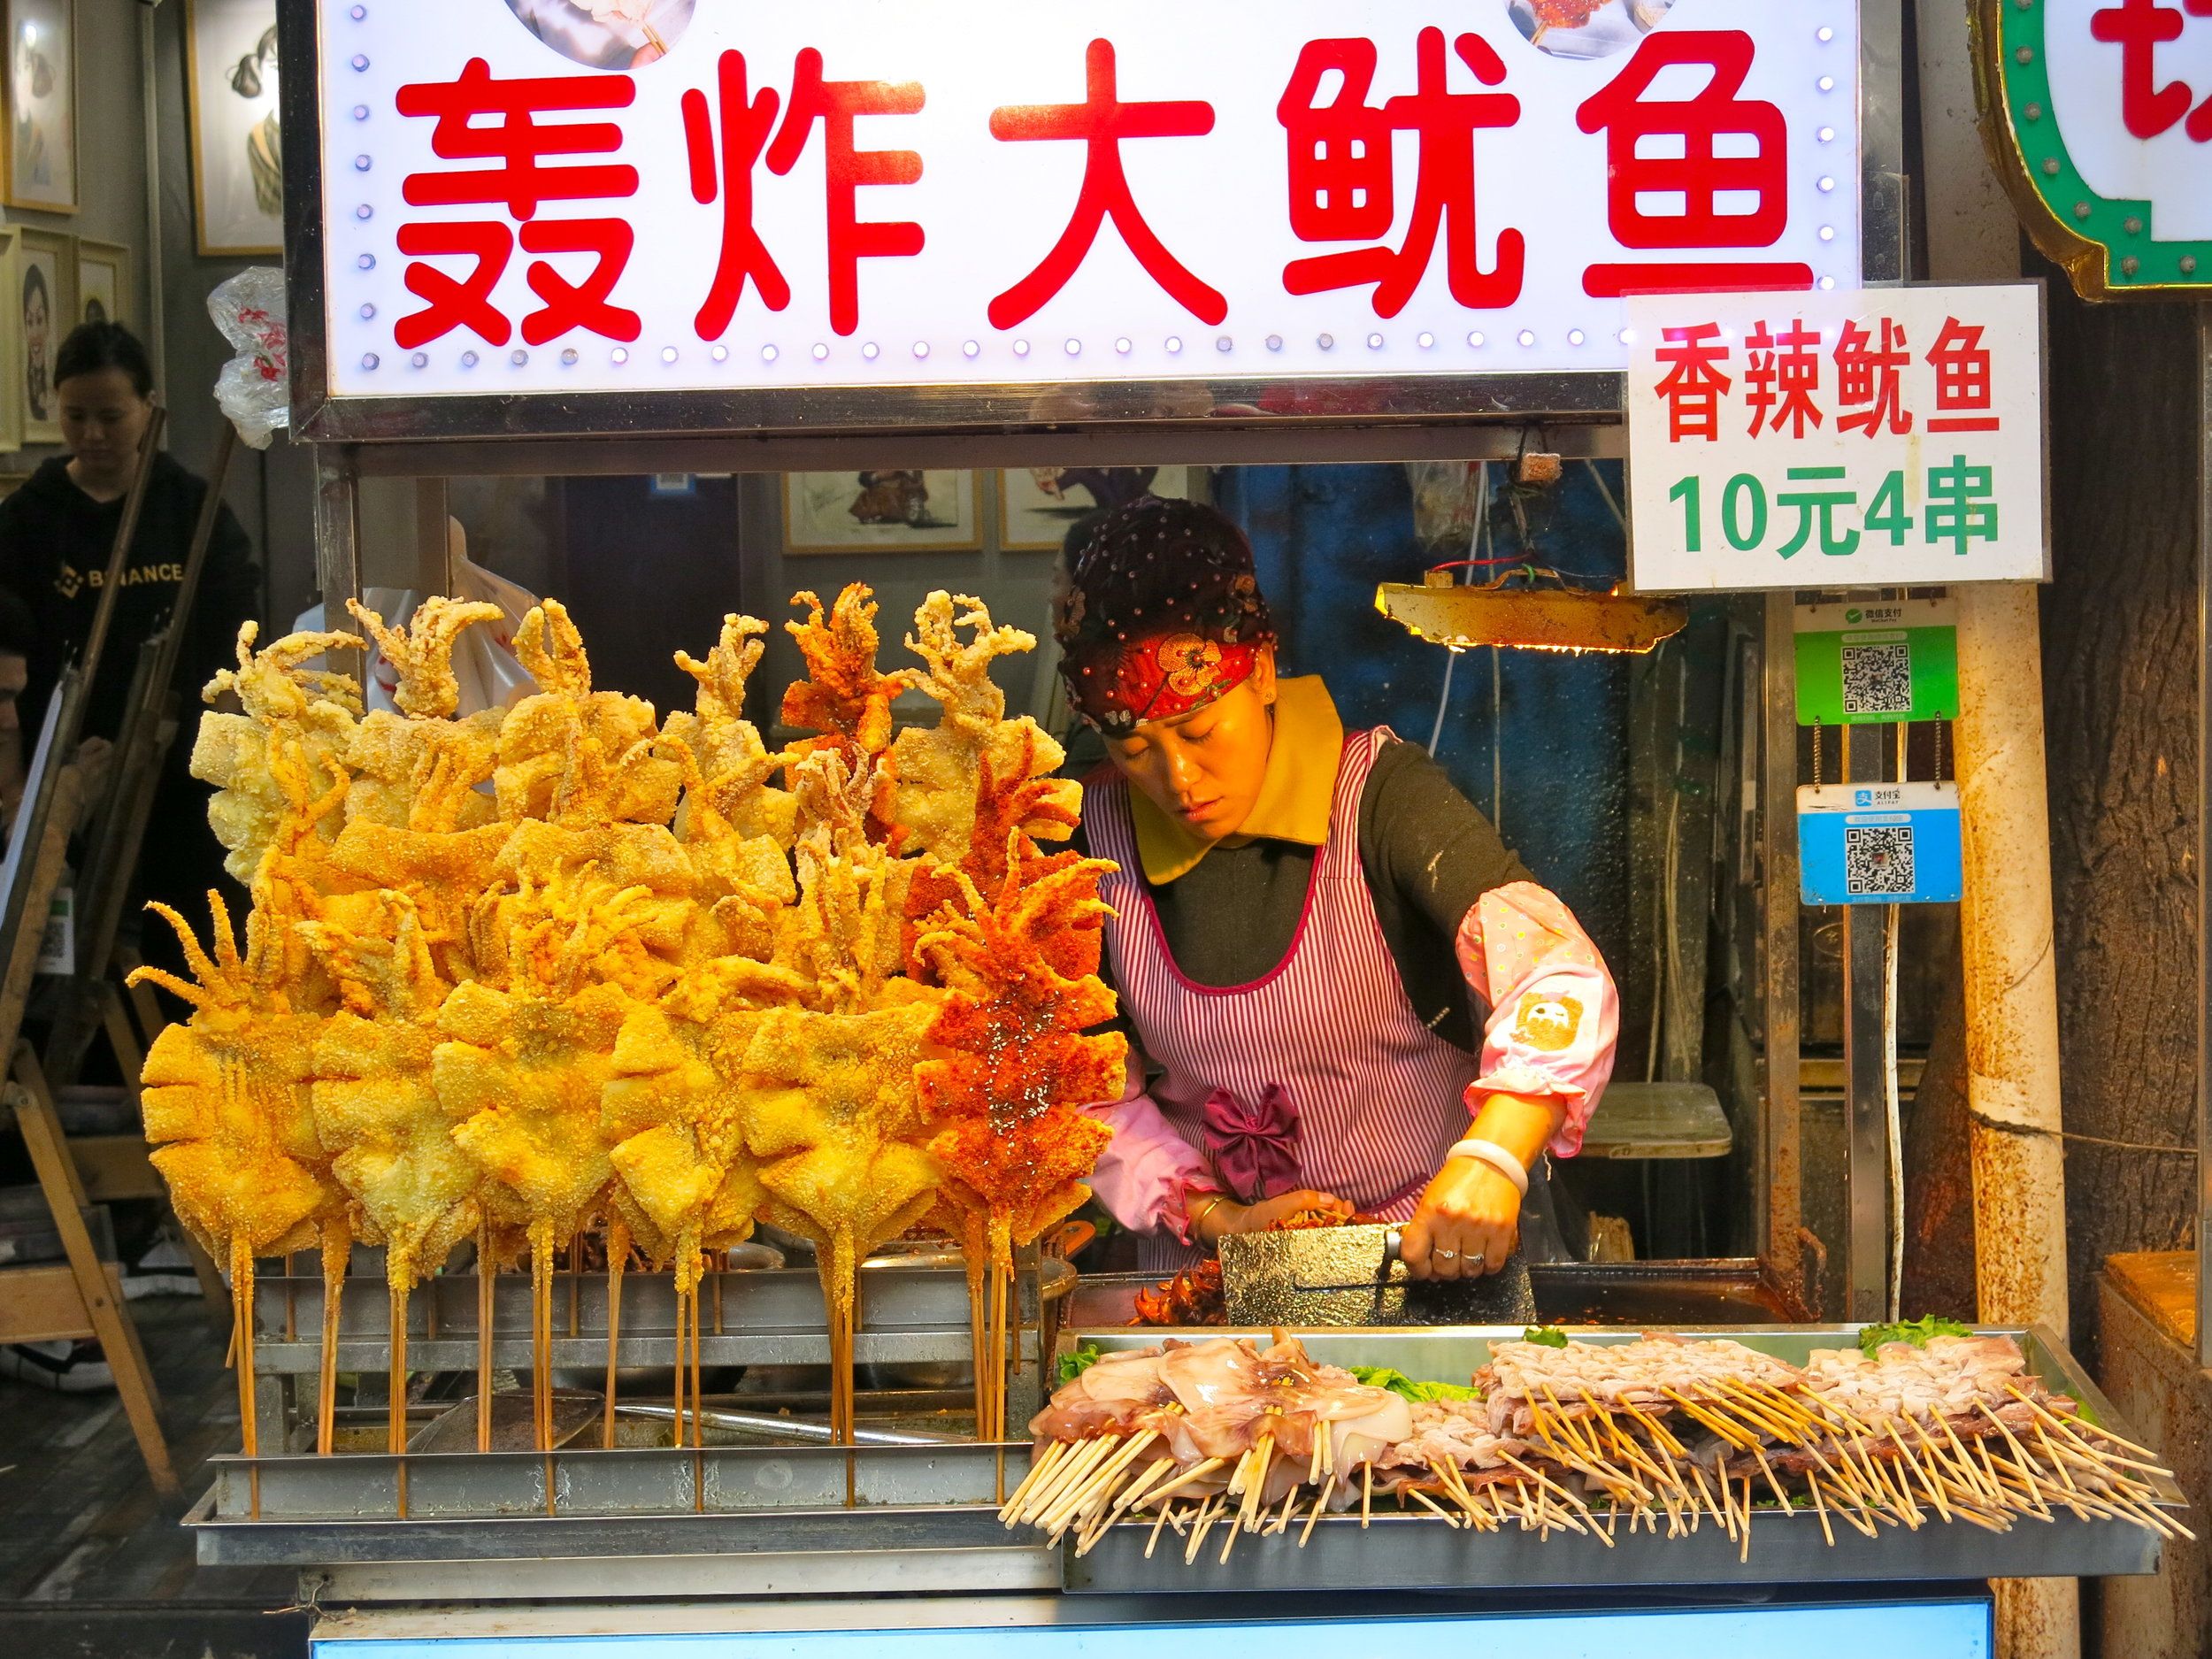 Woman selling squid on a stand